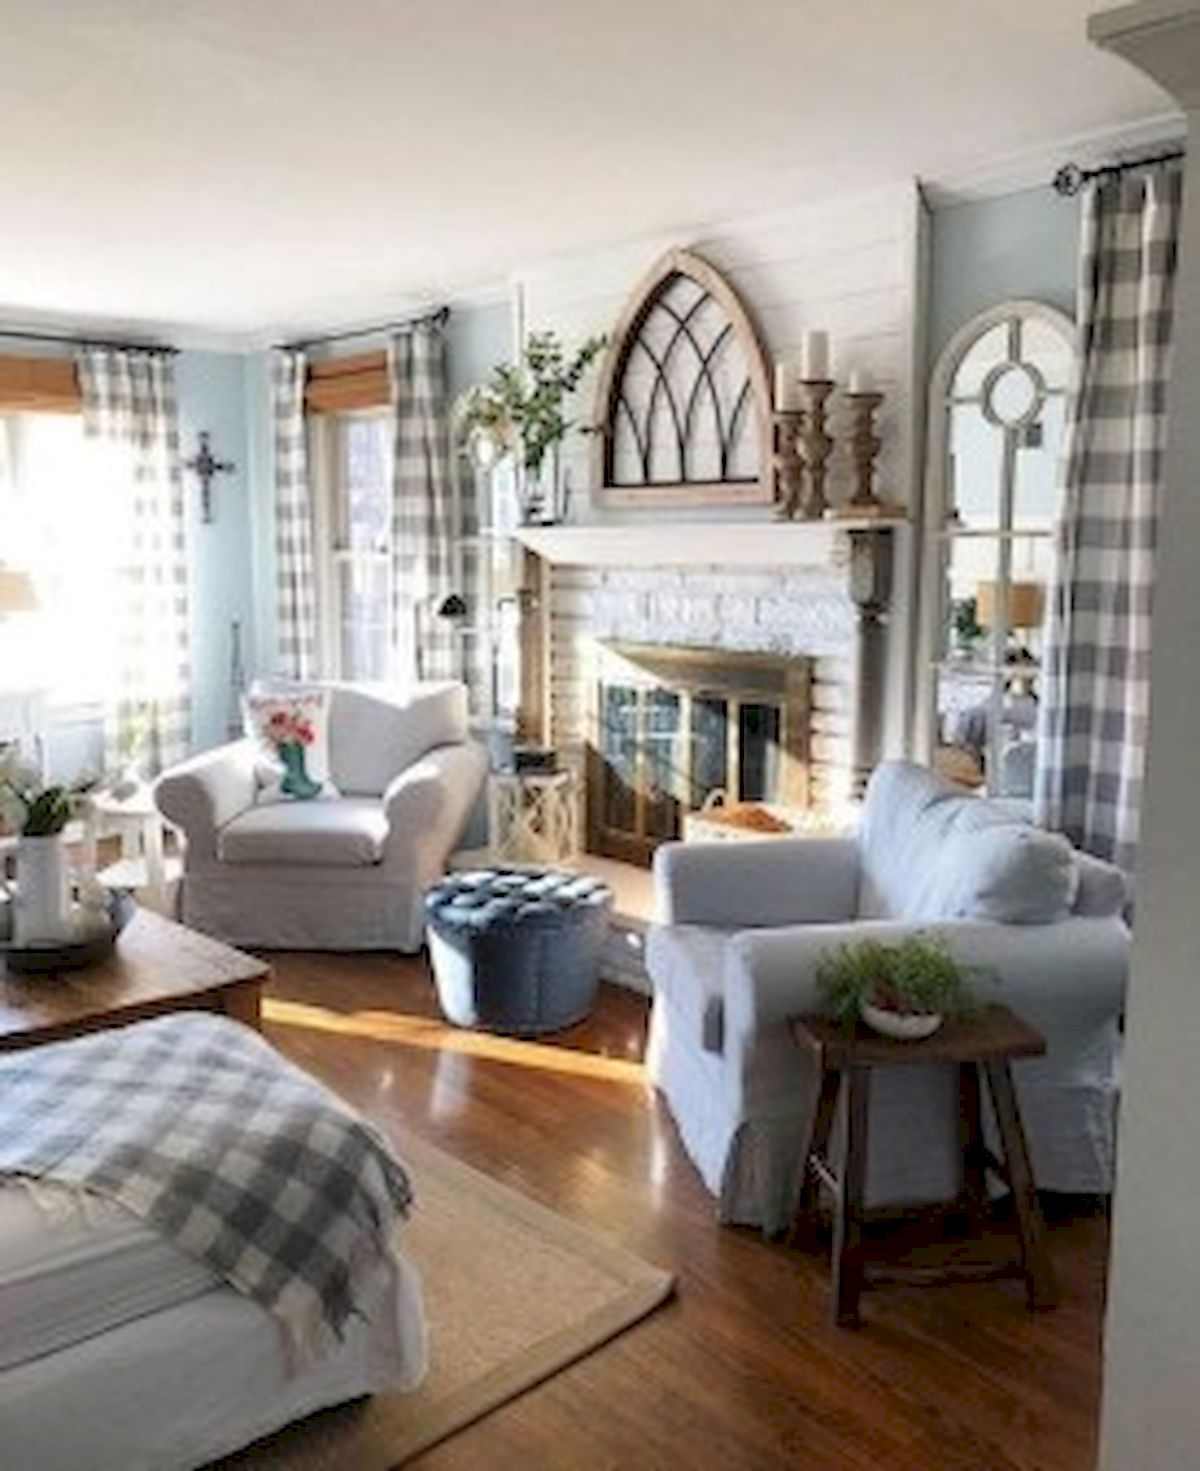 40+ Awesome Farmhouse Design Ideas For Living Room (36)